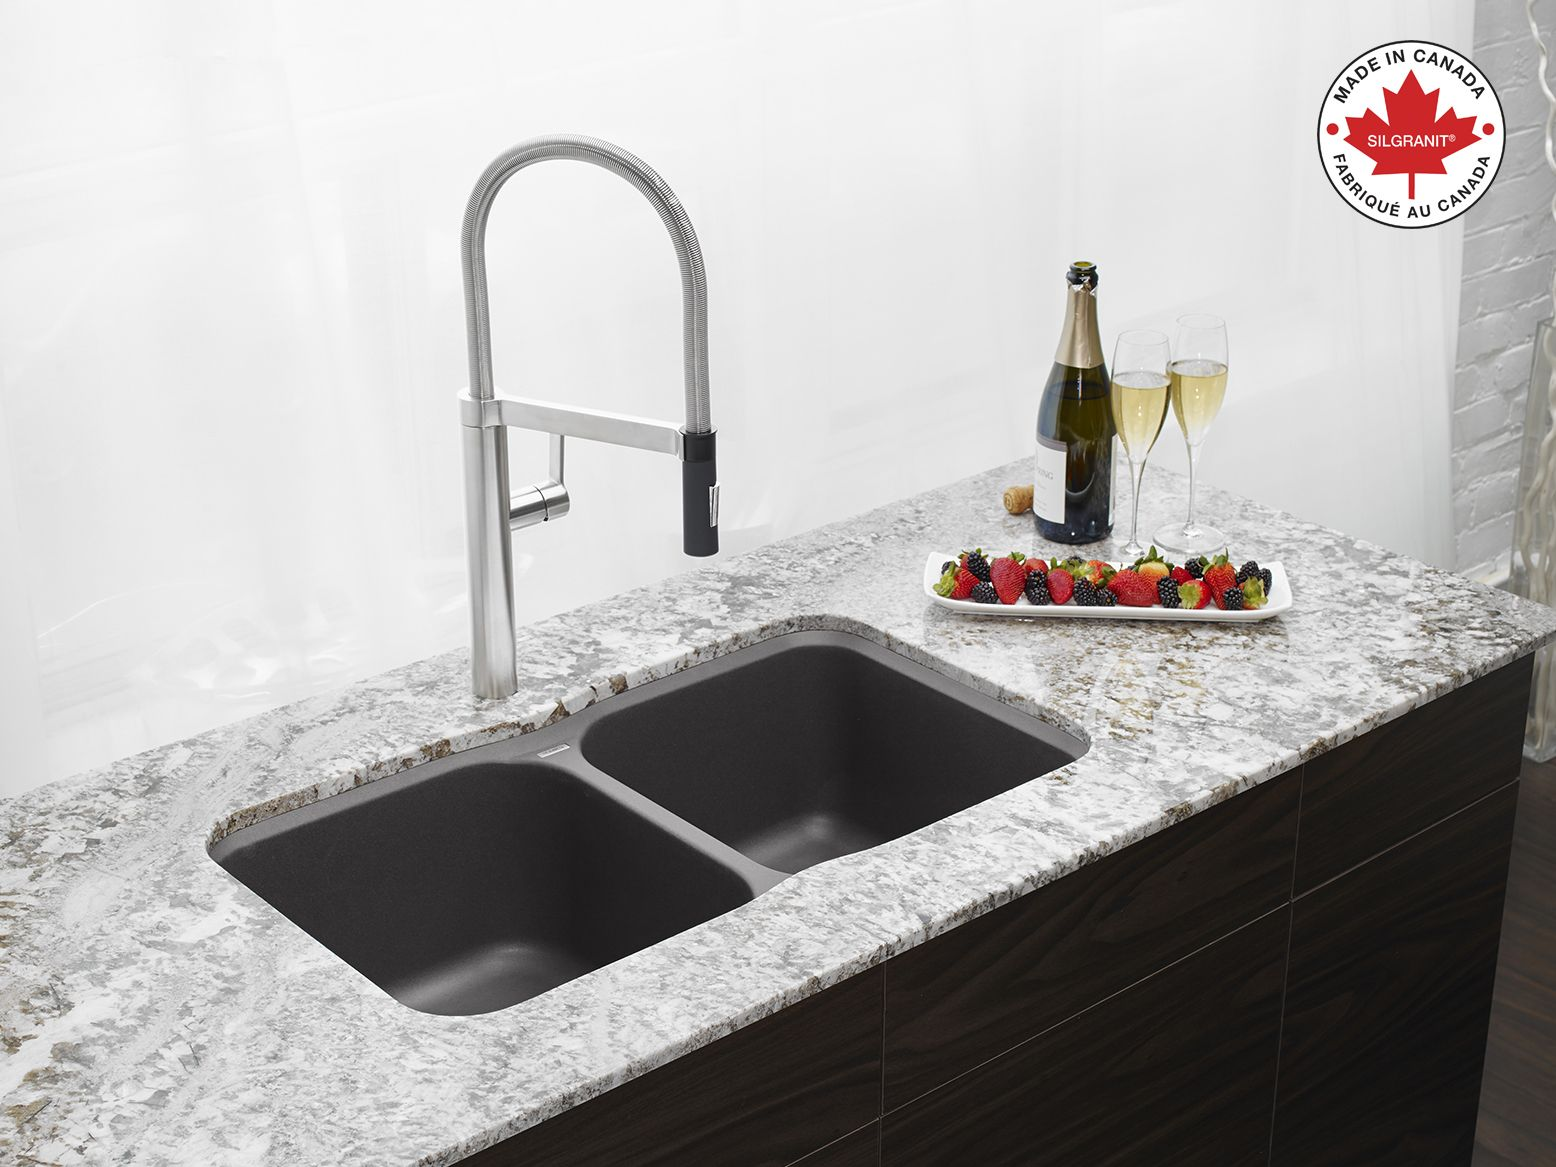 Have a toast by this blanco vision u silgranit sink in